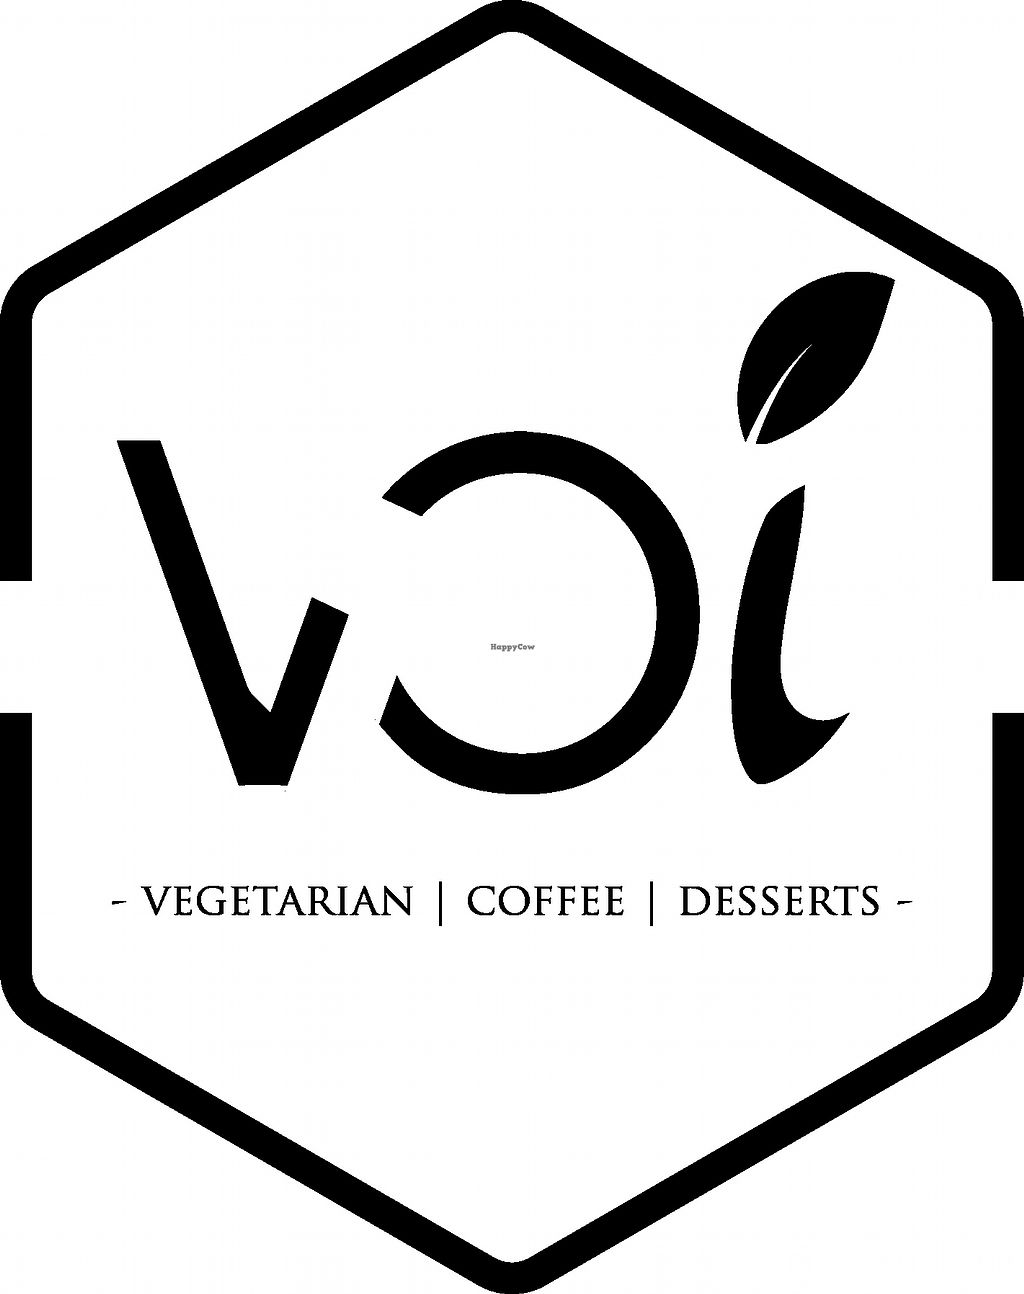 """Photo of Voi  by <a href=""""/members/profile/Rendyariestanto"""">Rendyariestanto</a> <br/>The logo <br/> December 7, 2017  - <a href='/contact/abuse/image/106729/332995'>Report</a>"""